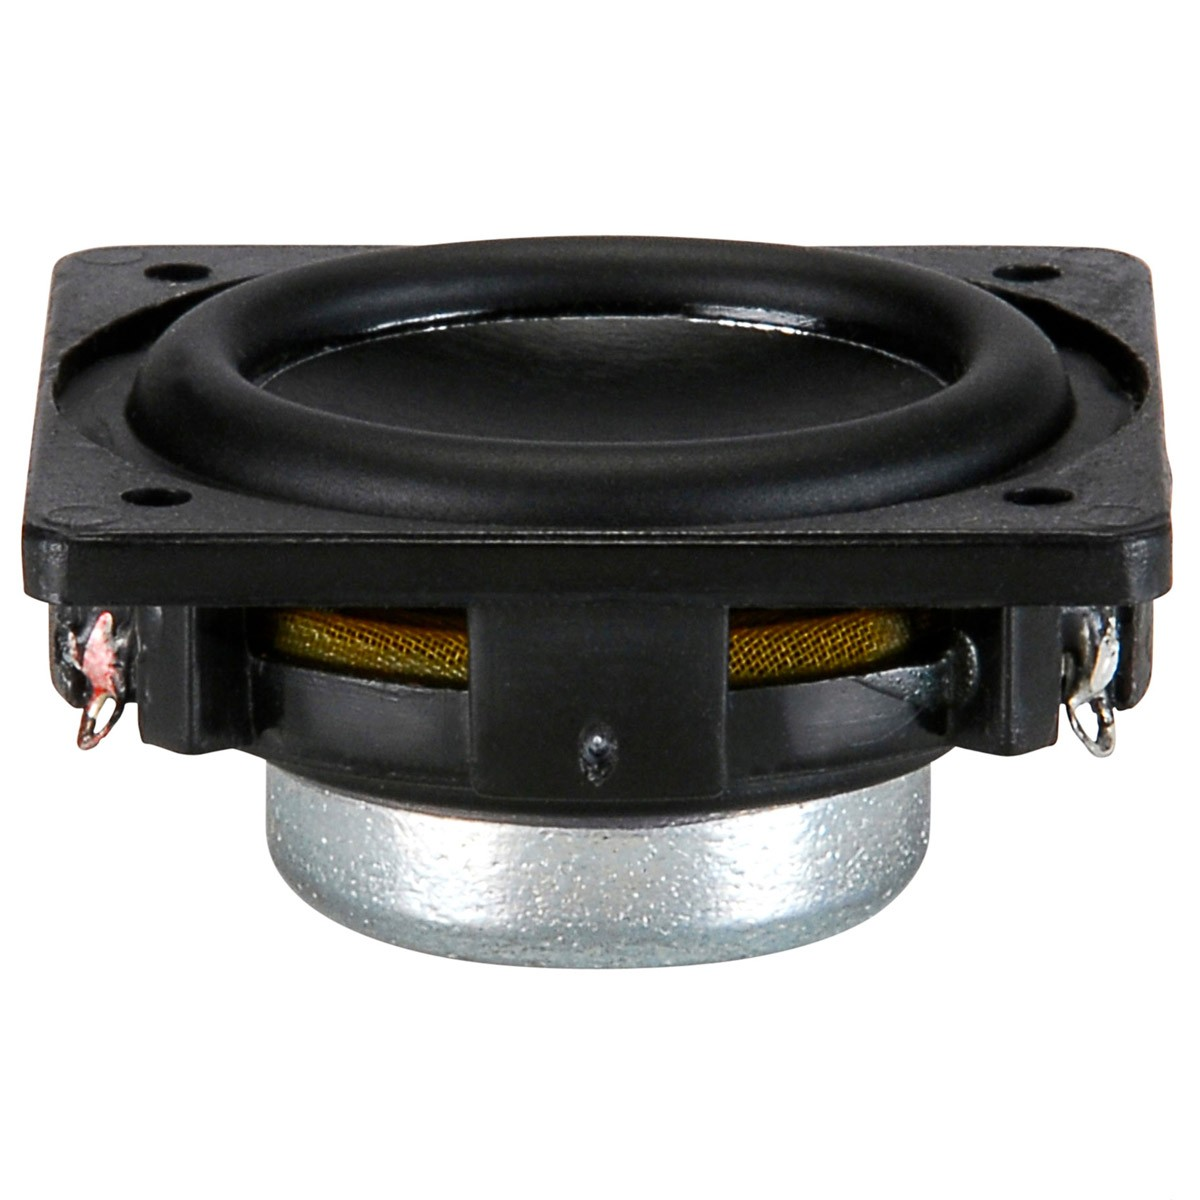 DAYTON AUDIO CE32A-8 Mini Speaker Driver Full Range 2W 8 Ohm 78dB 240Hz - 20kHz Ø2.5cm